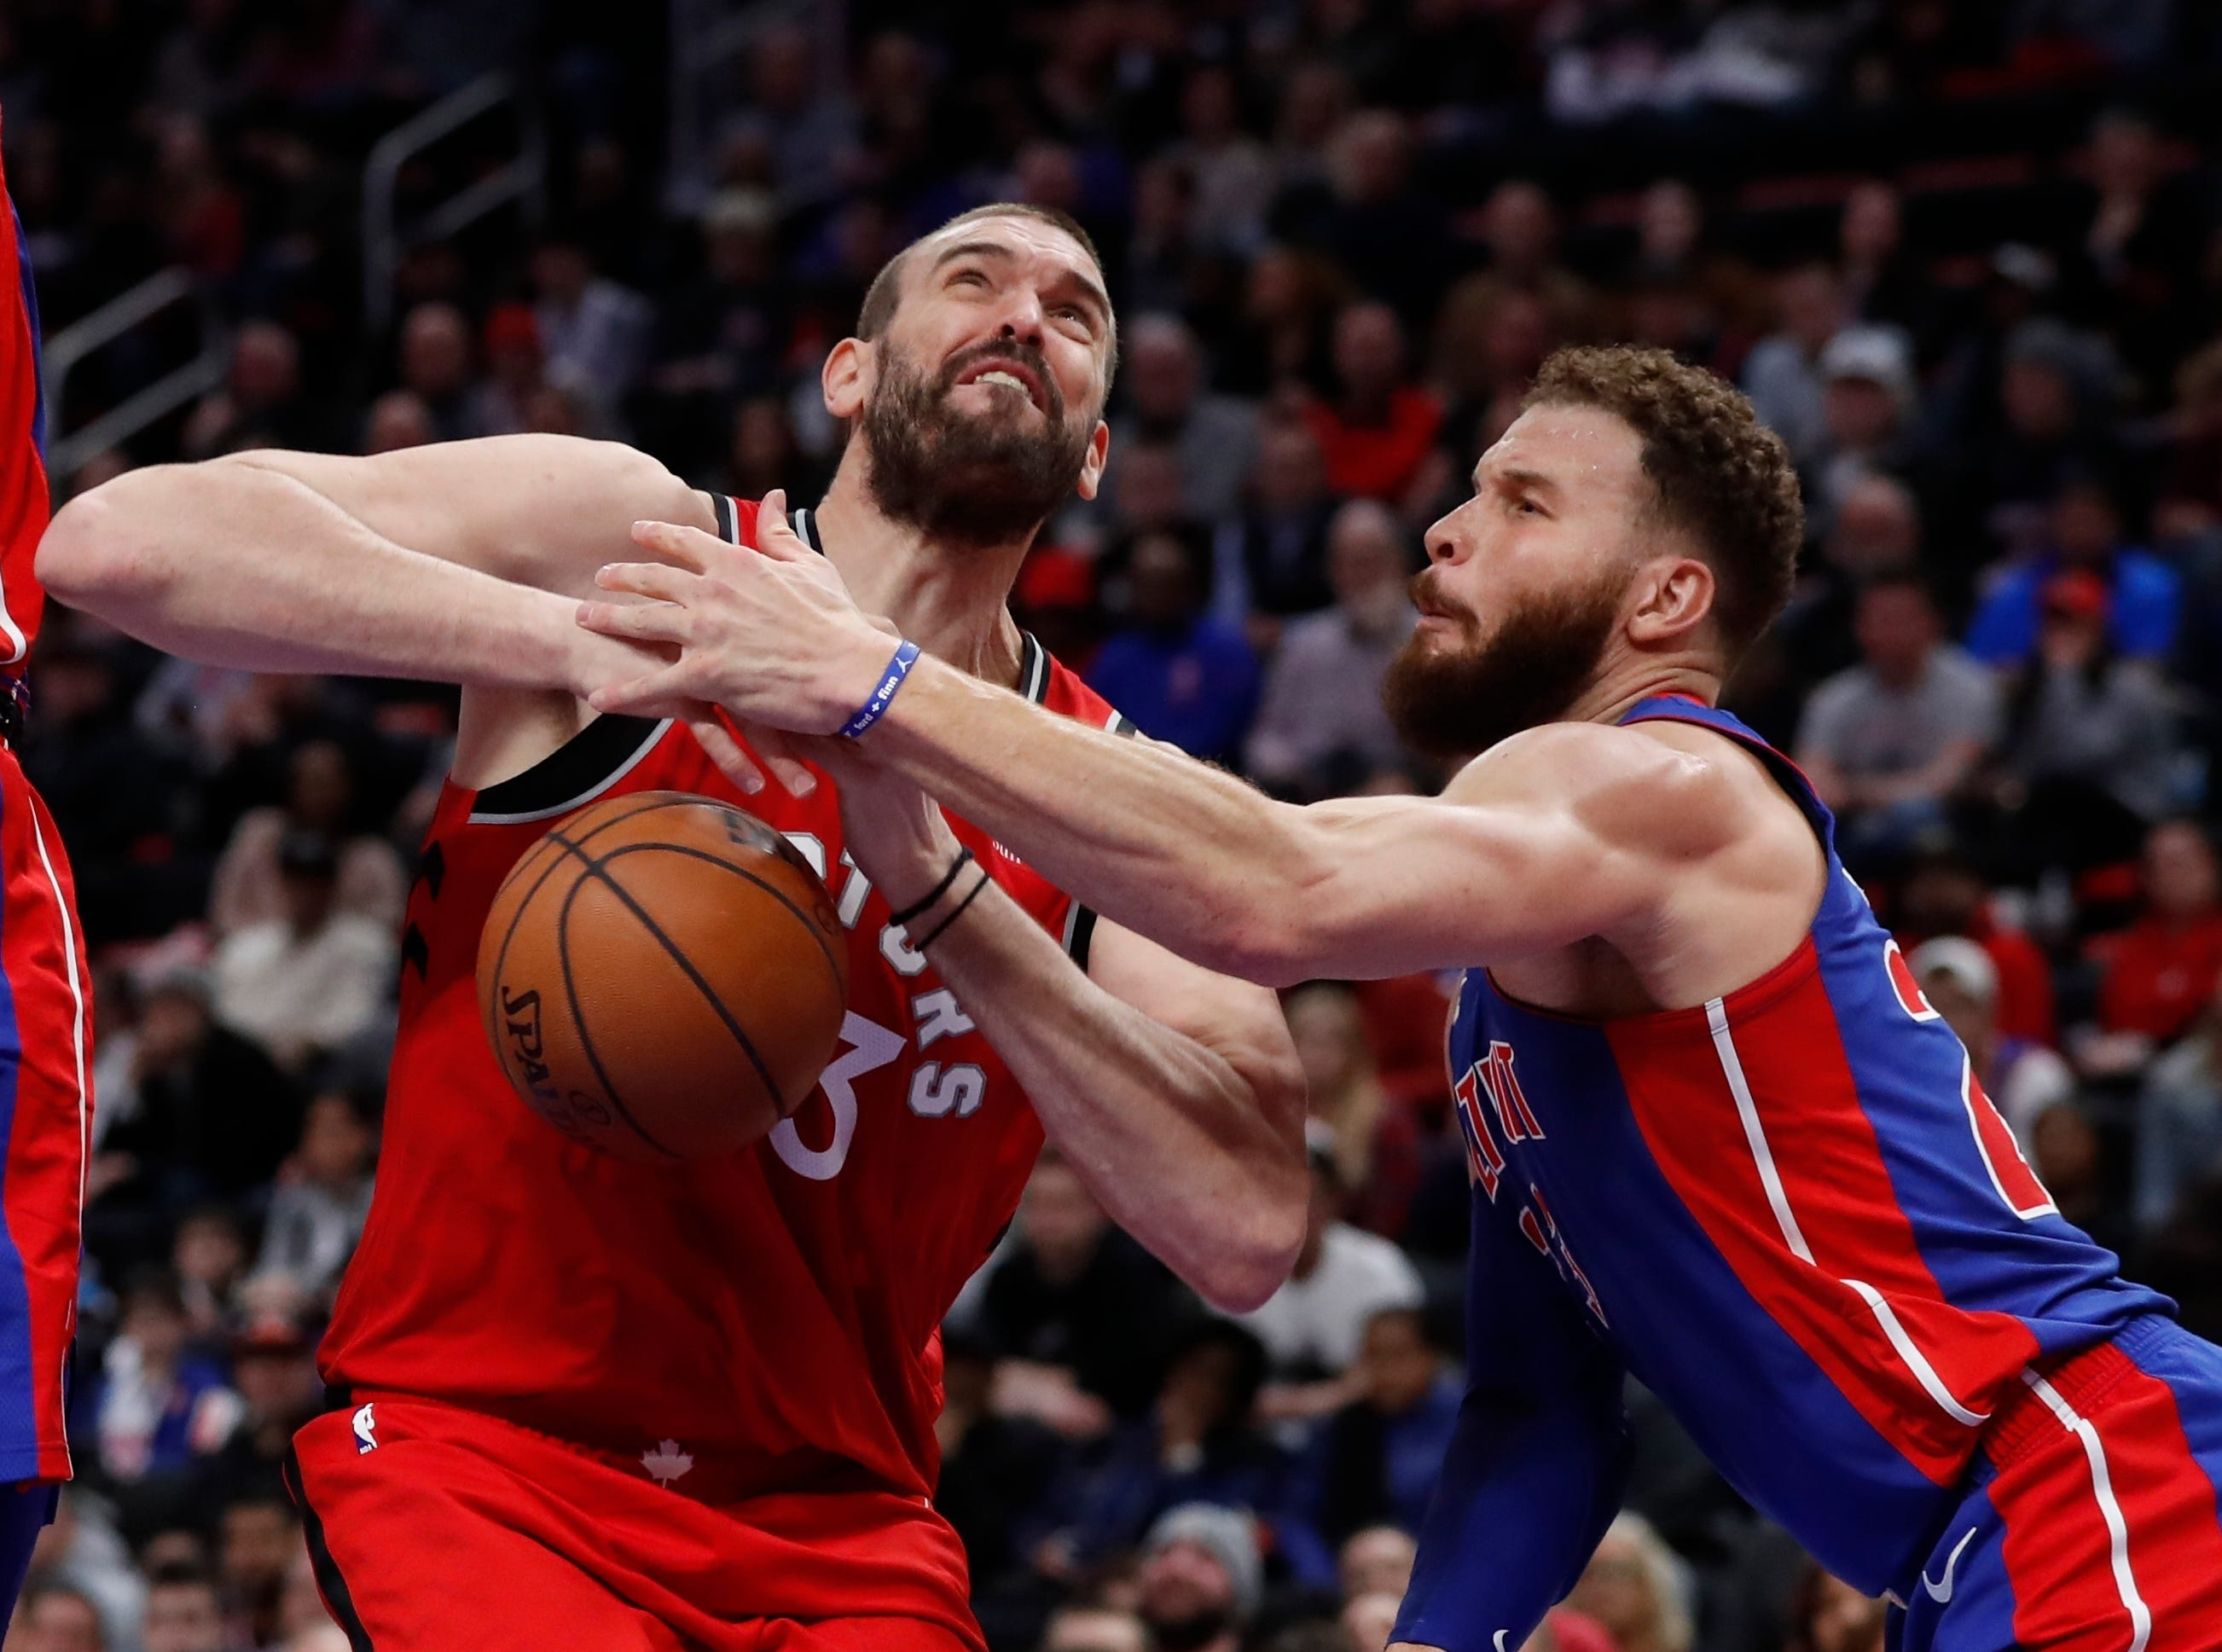 Detroit Pistons forward Blake Griffin knocks the ball away from Toronto Raptors center Marc Gasol (33) during the second half.